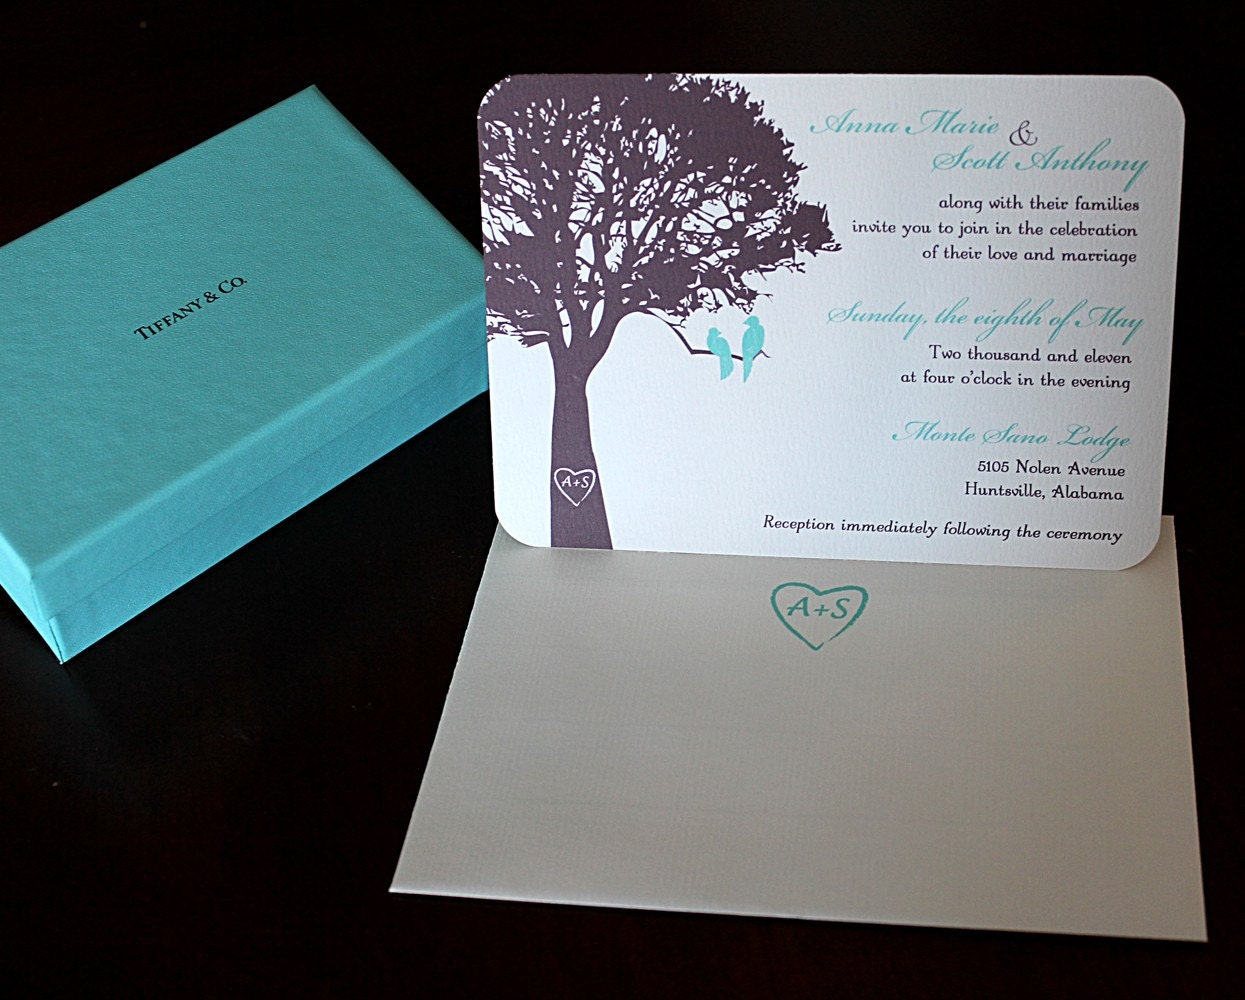 Bird Wedding Invitation: Love Birds In A Tree Wedding Invitation SAMPLE